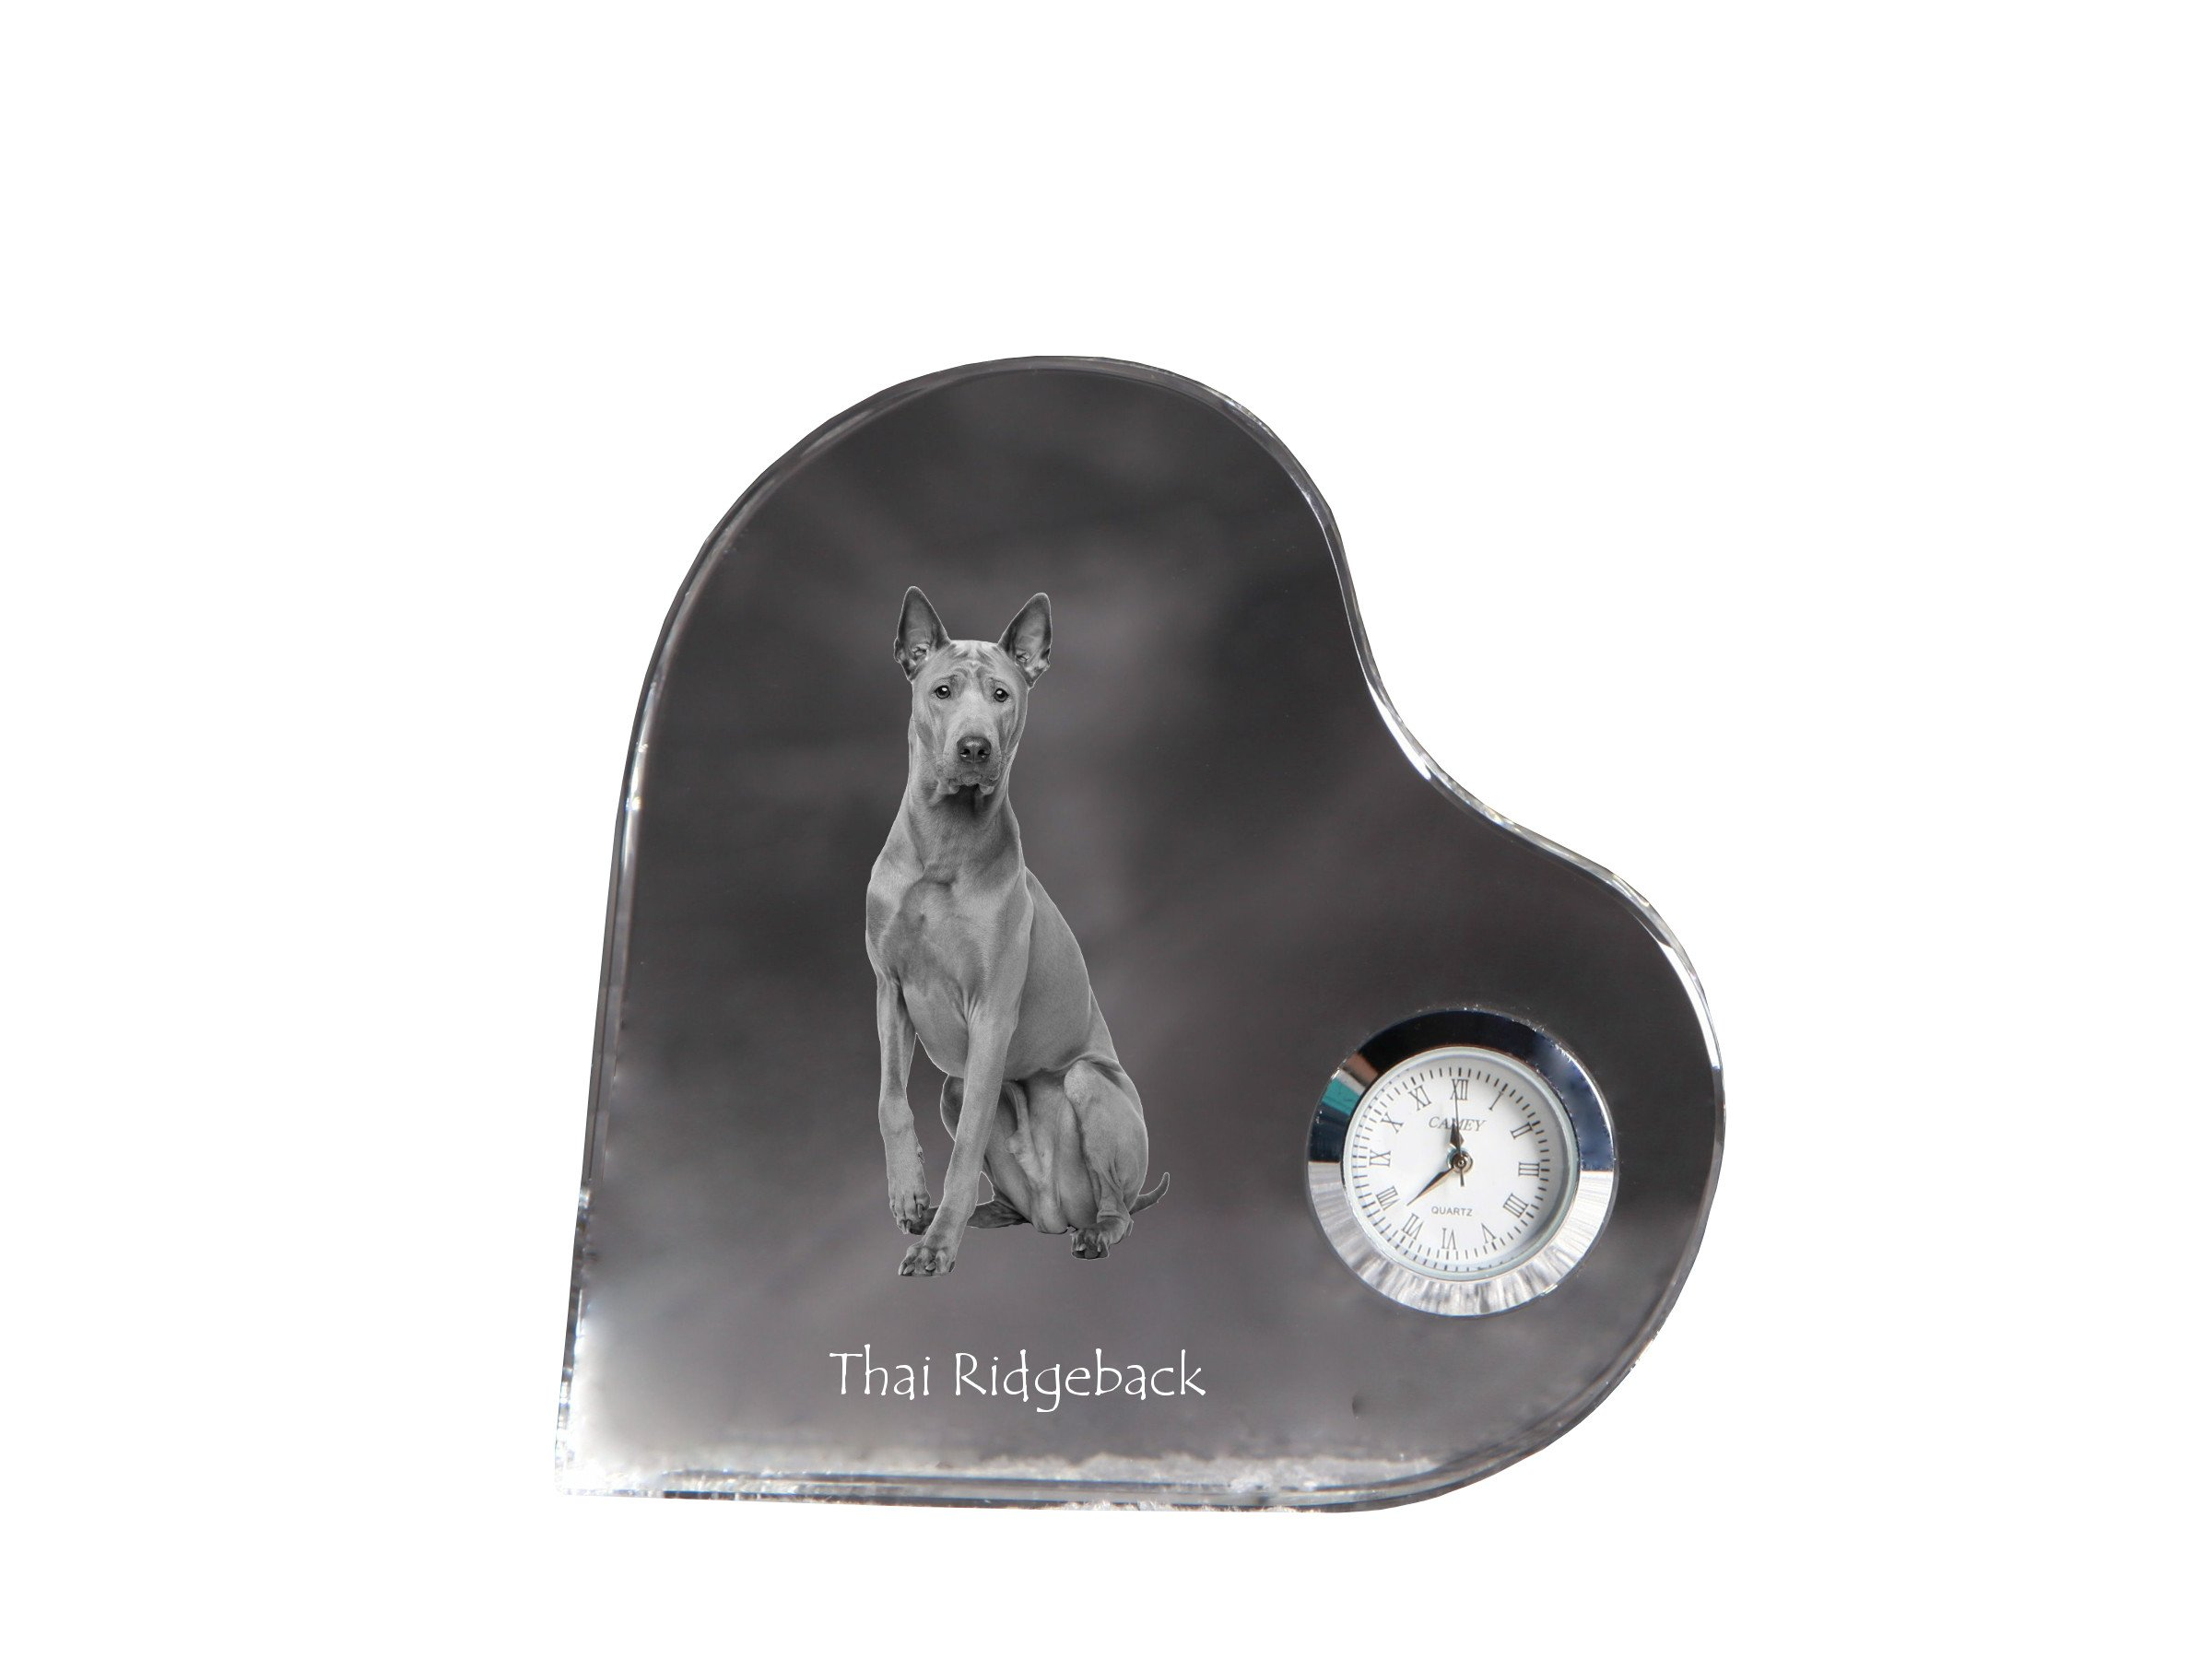 Thai Ridgeback, heart shaped crystal clock with an image of a dog